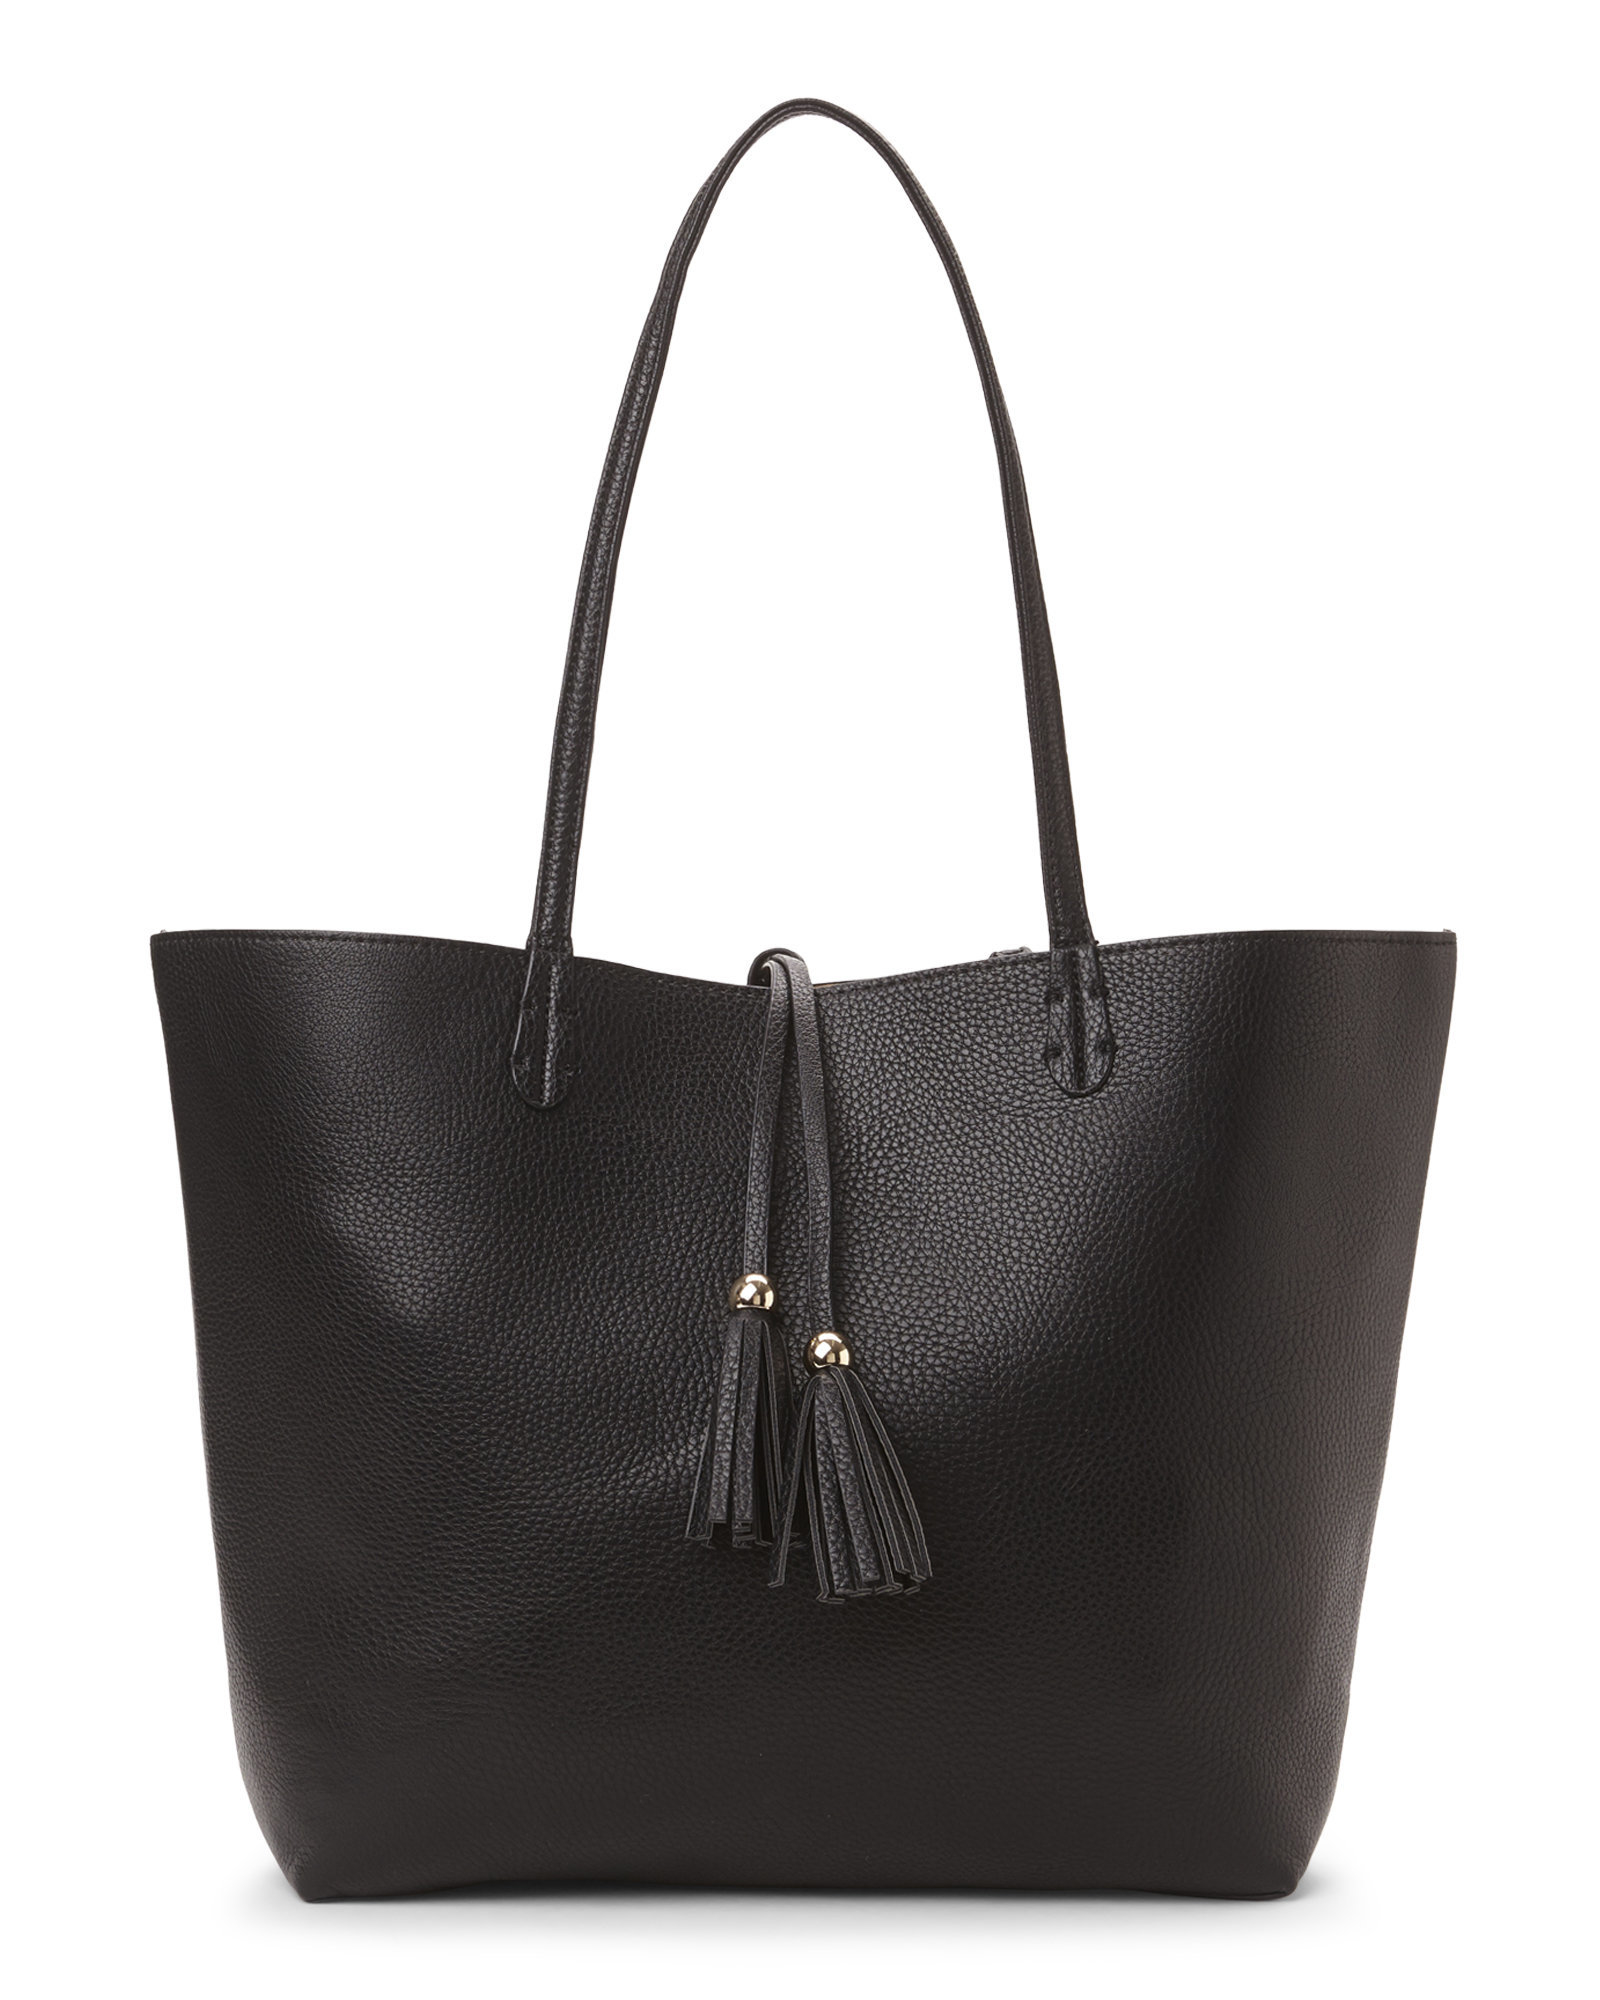 Imoshion Black & Tan Reversible Bag-In-Bag Tote in Black | Lyst